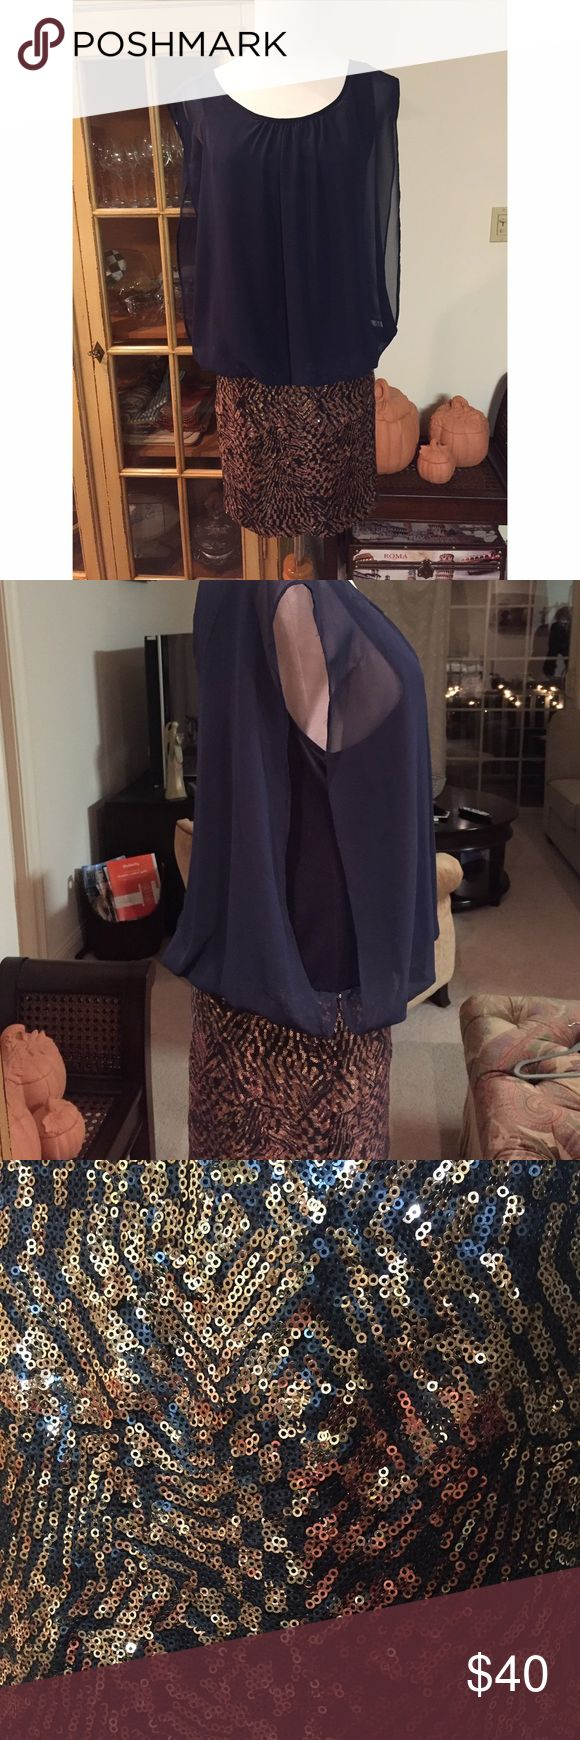 BouBou Navy and Rose Gold Sparkle Dress Large Beautiful Night out dress from BouBou! Navy on the top and rose gold and navy sparkles on the bottom. One piece all together. Worn only a handful of times and in great condition! BouBou  Dresses Mini